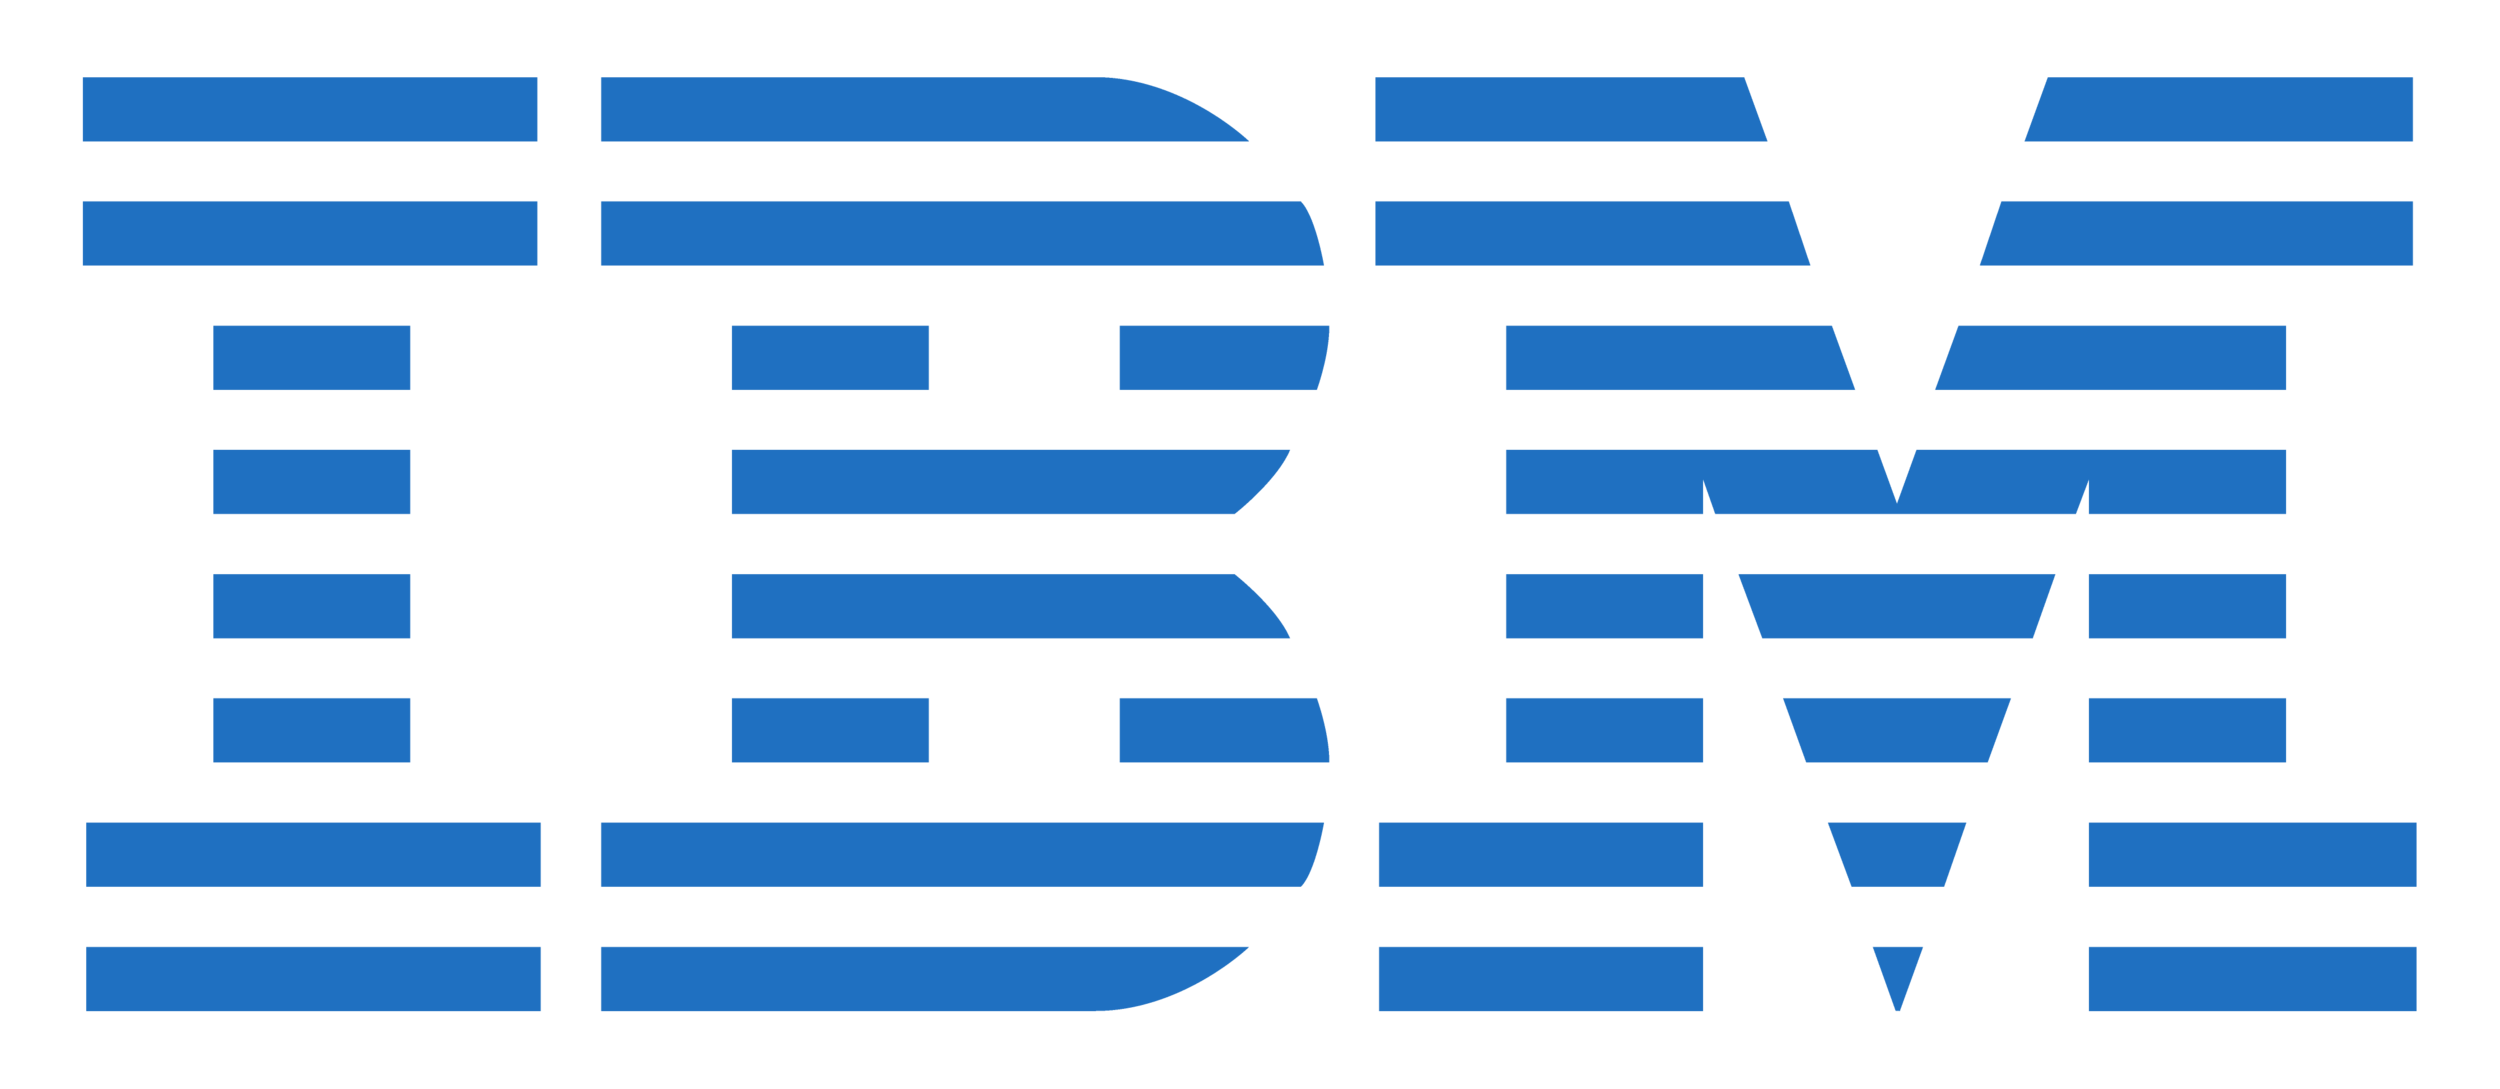 International Business Machines Corporation (IBM) is an American multinational information technology company